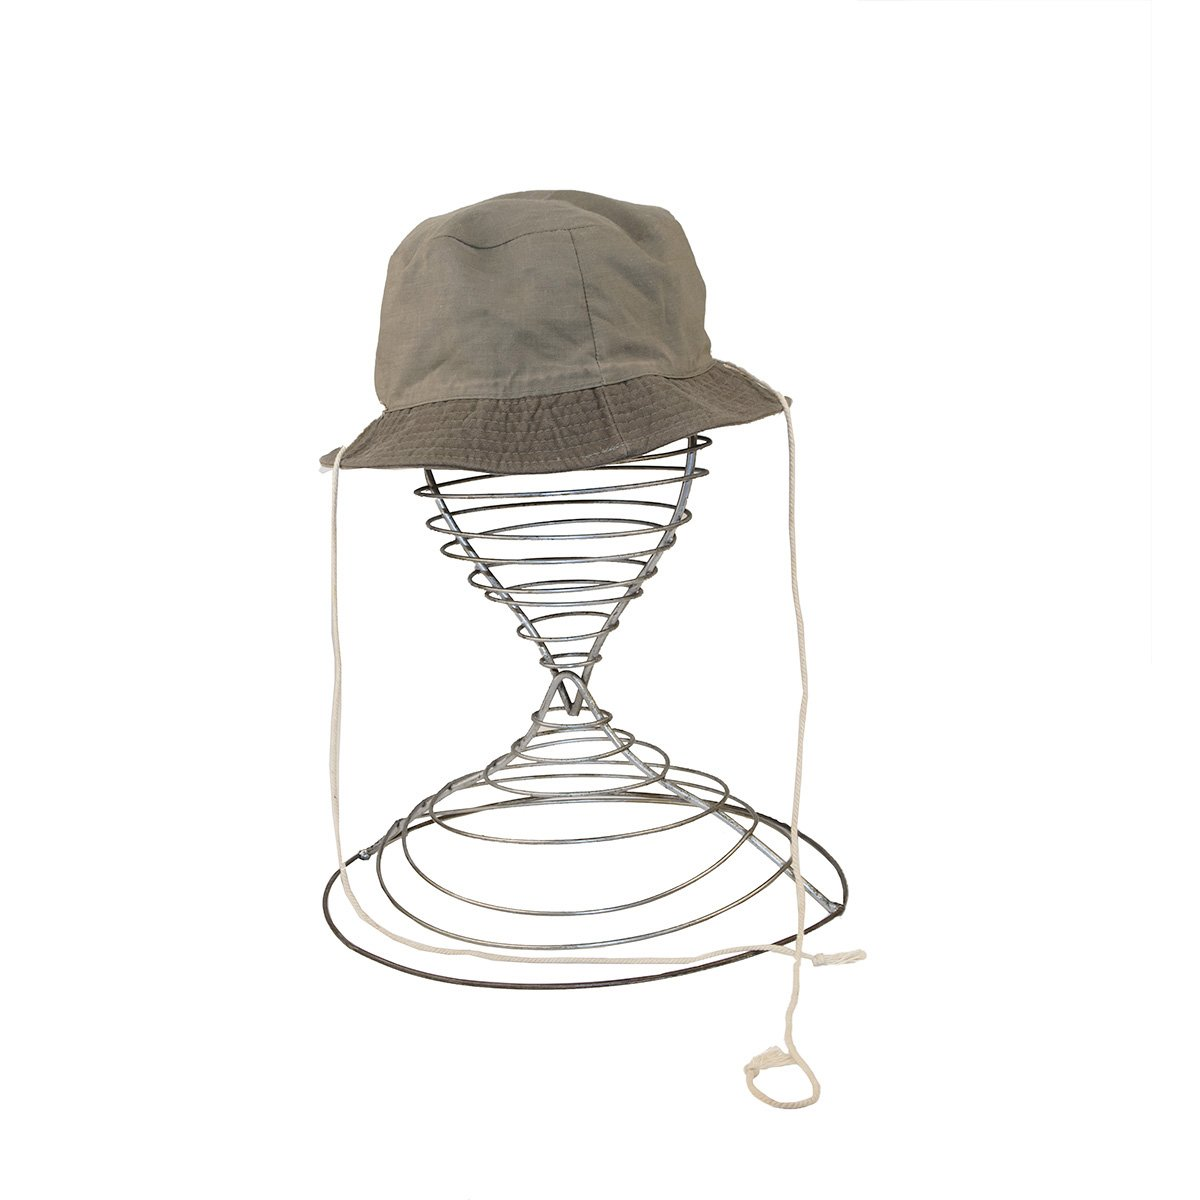 Green Canvas Bucket Hat, String Ties, Size 23